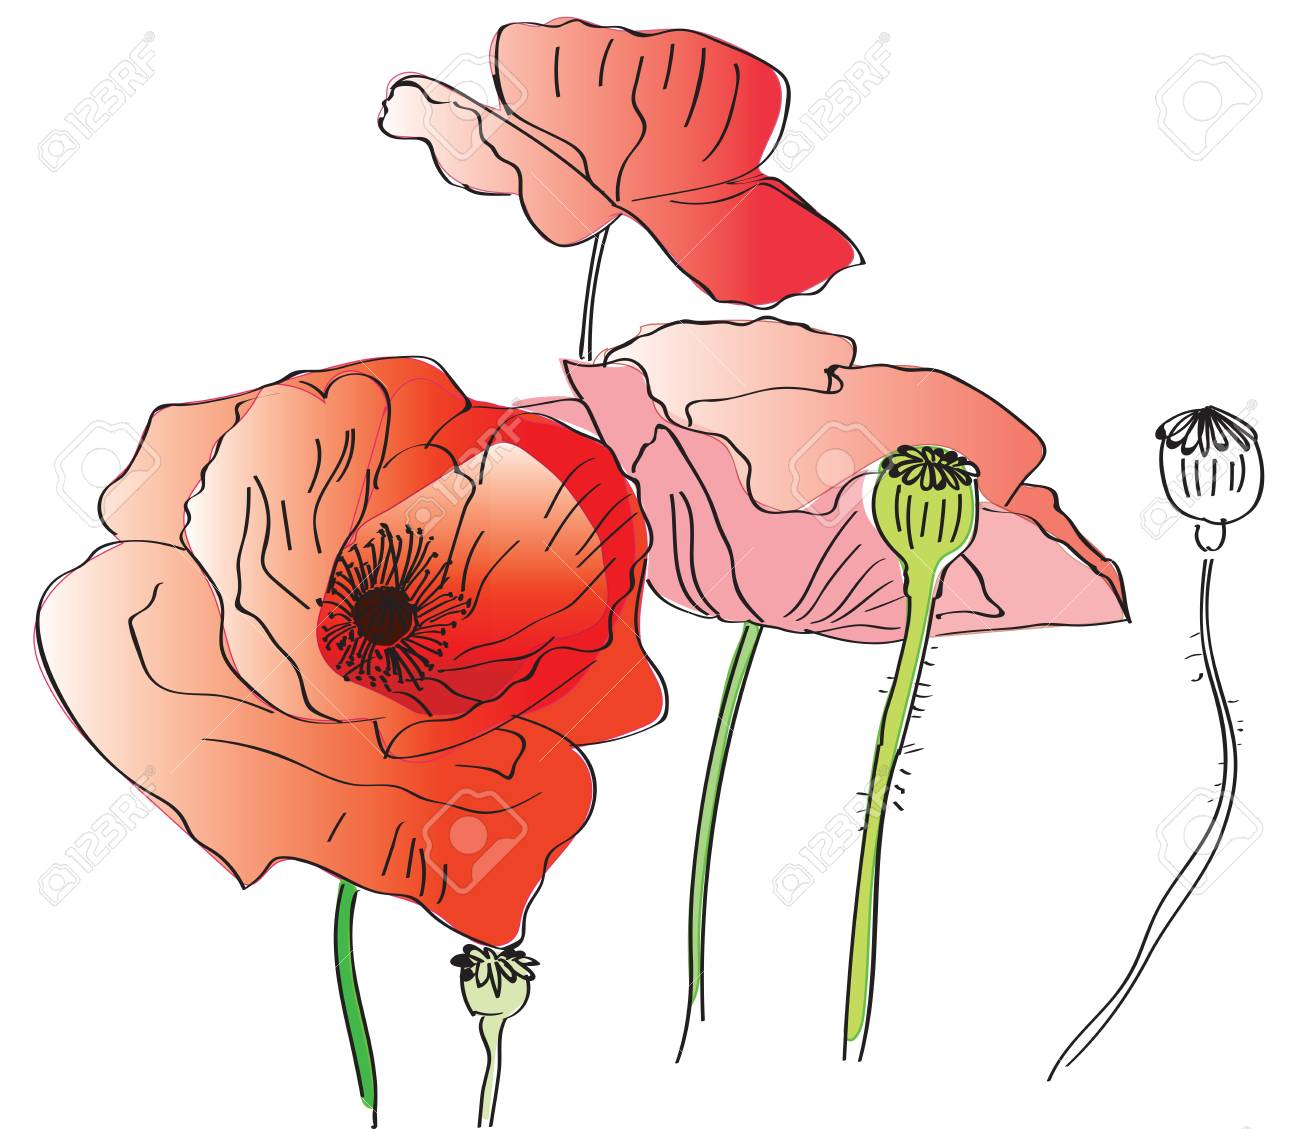 Poppy Flowers Drawing On Tablet Stock Photo Picture And Royalty